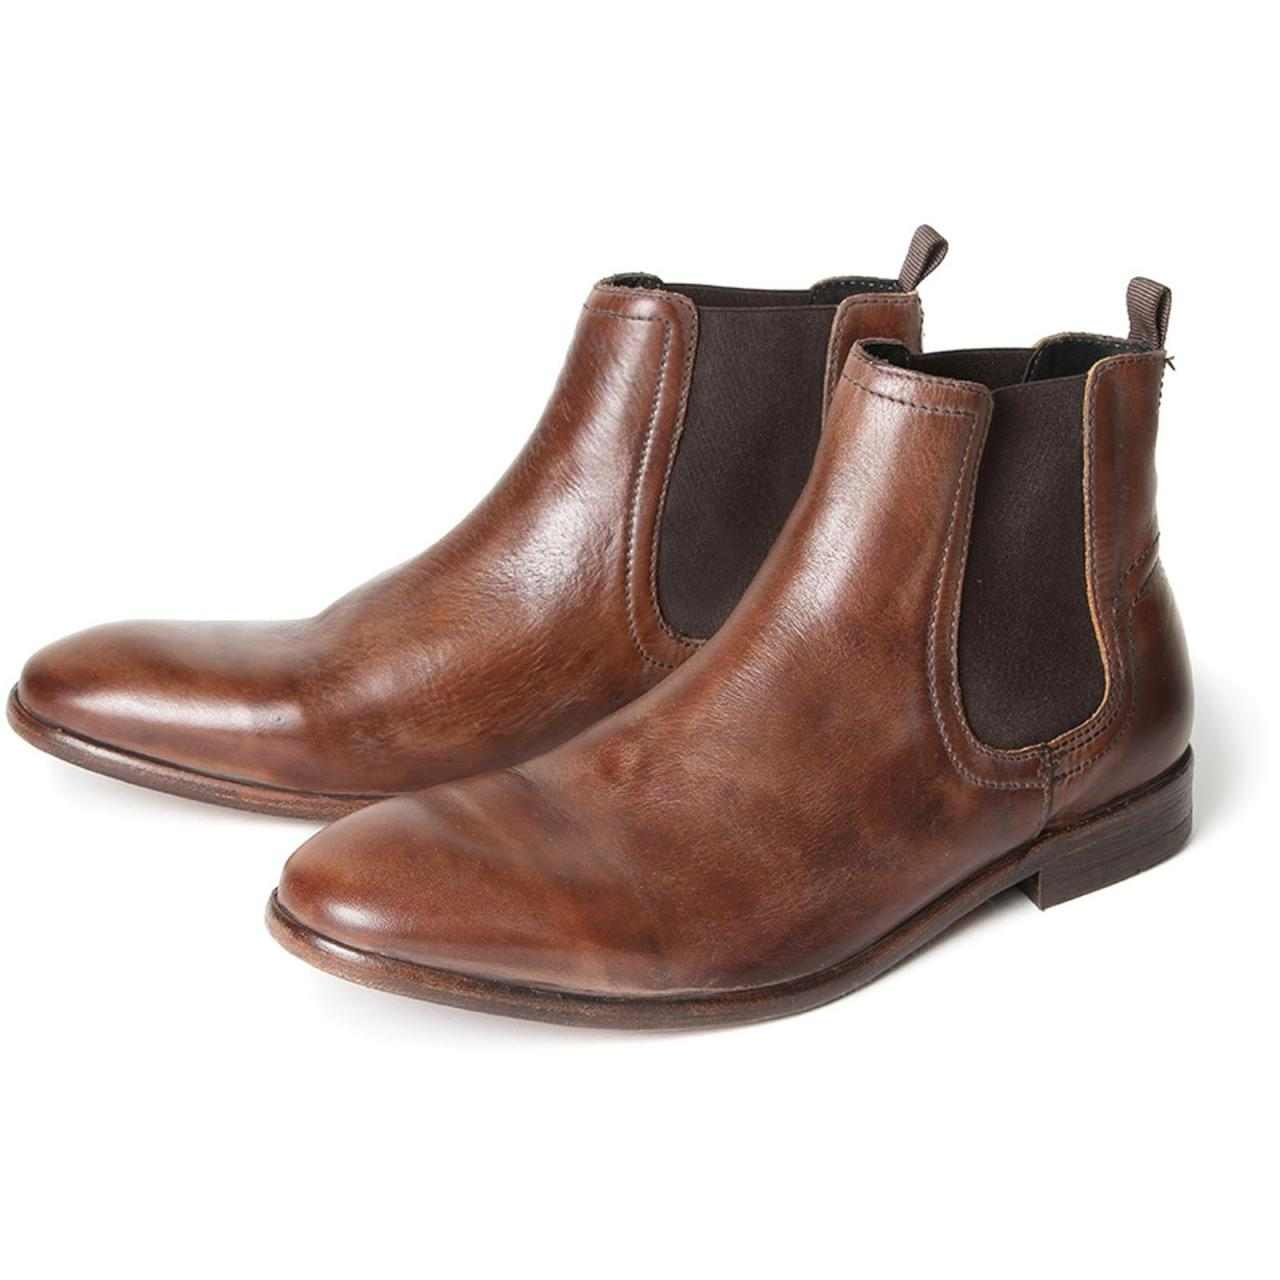 Handmade Men's Chelsea Jumper Slip On Brown Leather Boots